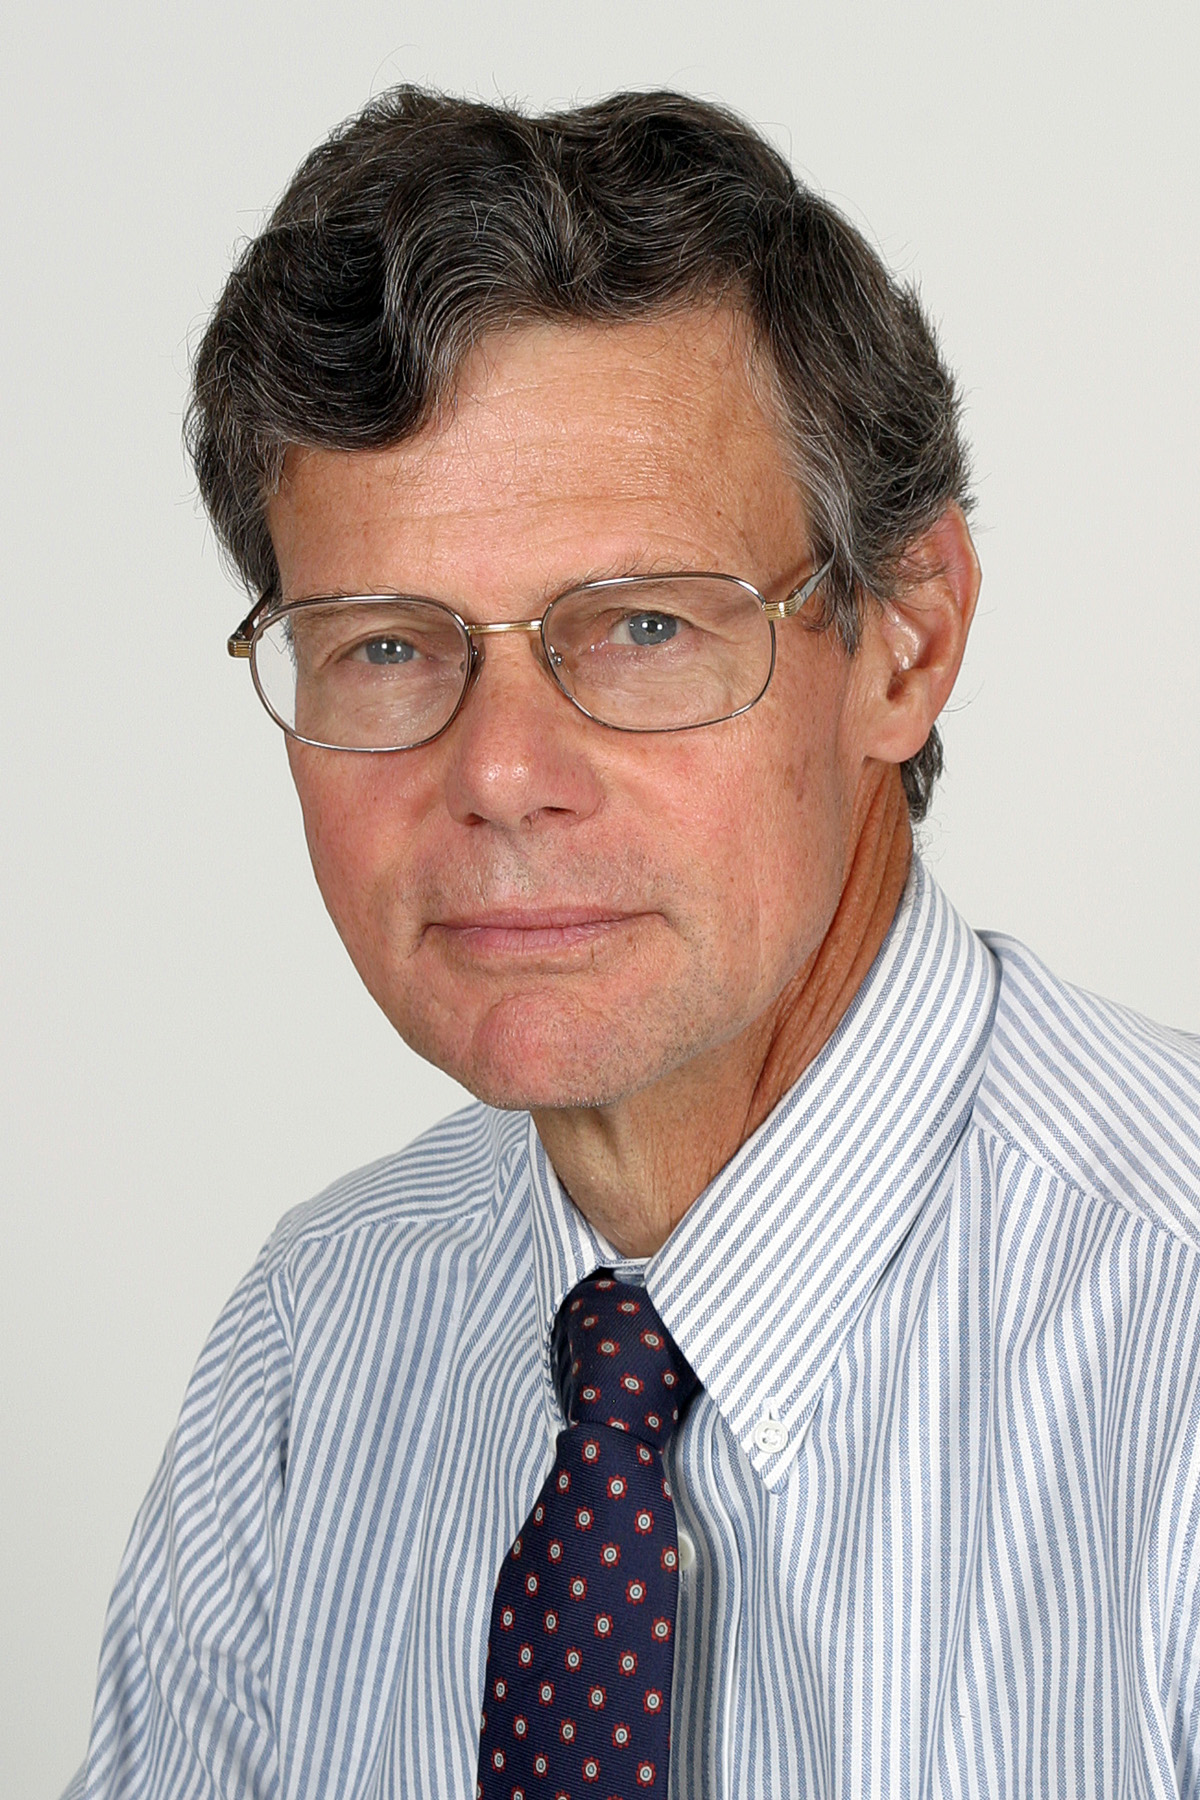 Robert D. Baker, PhD, MD